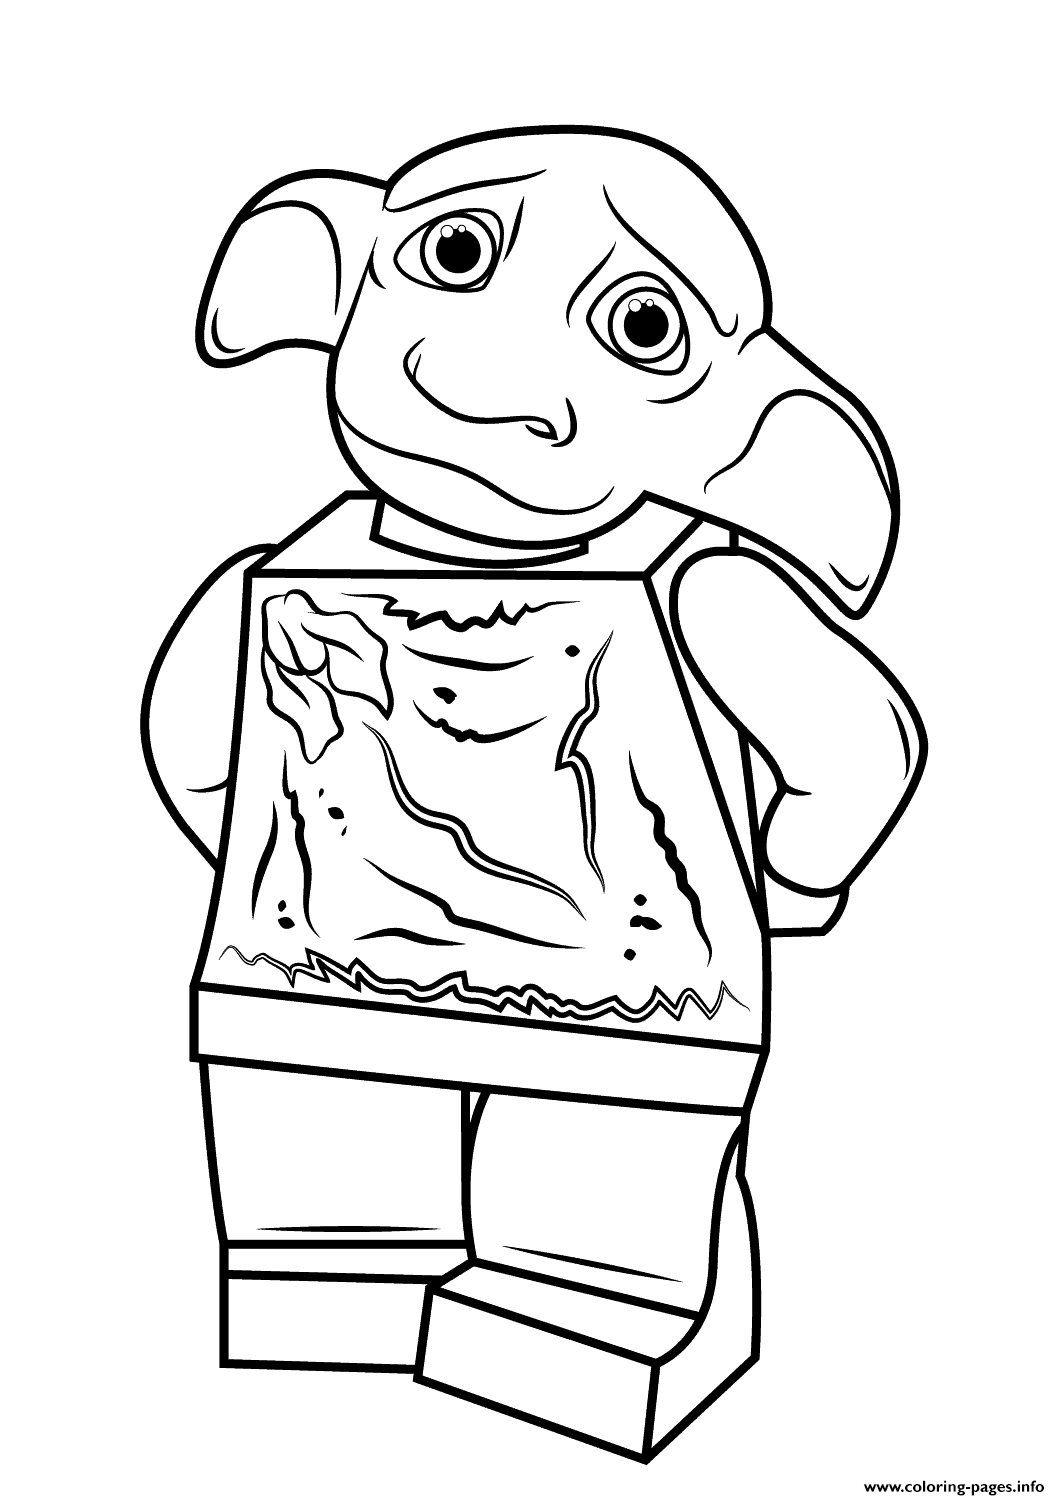 Print Lego Harry Potter Dobby Coloring Pages Harry Potter Coloring Pages Harry Potter Colors Dobby Harry Potter